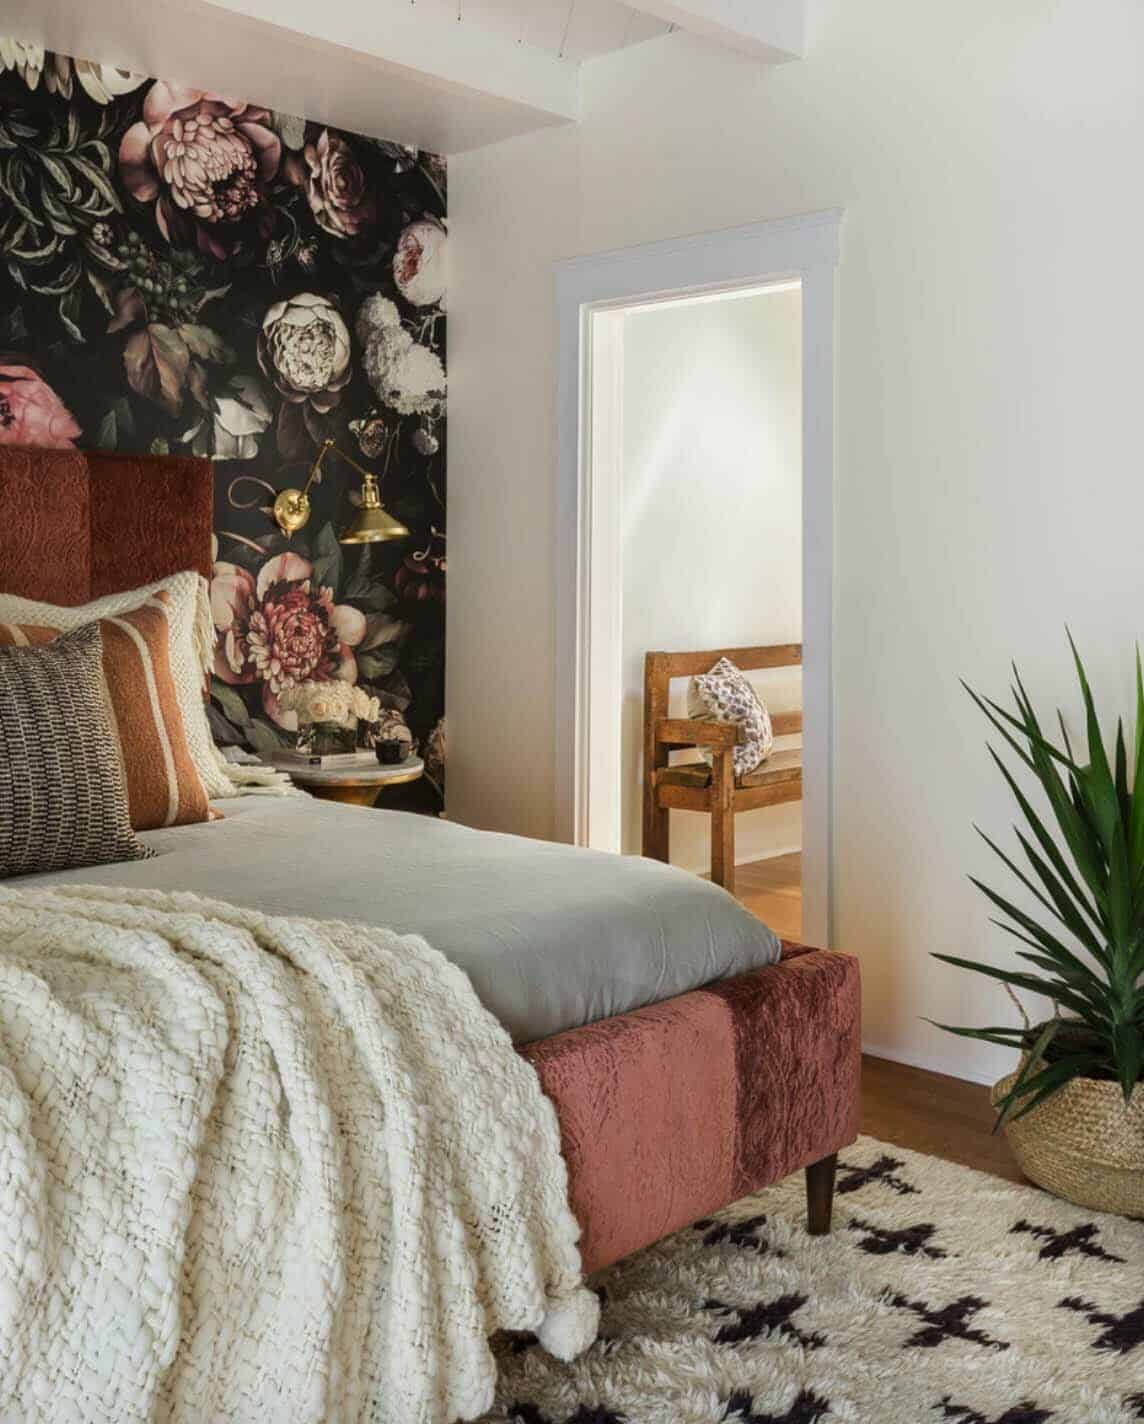 Terracotta Bedroom Designs: Alluring Modern-eclectic Home With Playful Interiors In